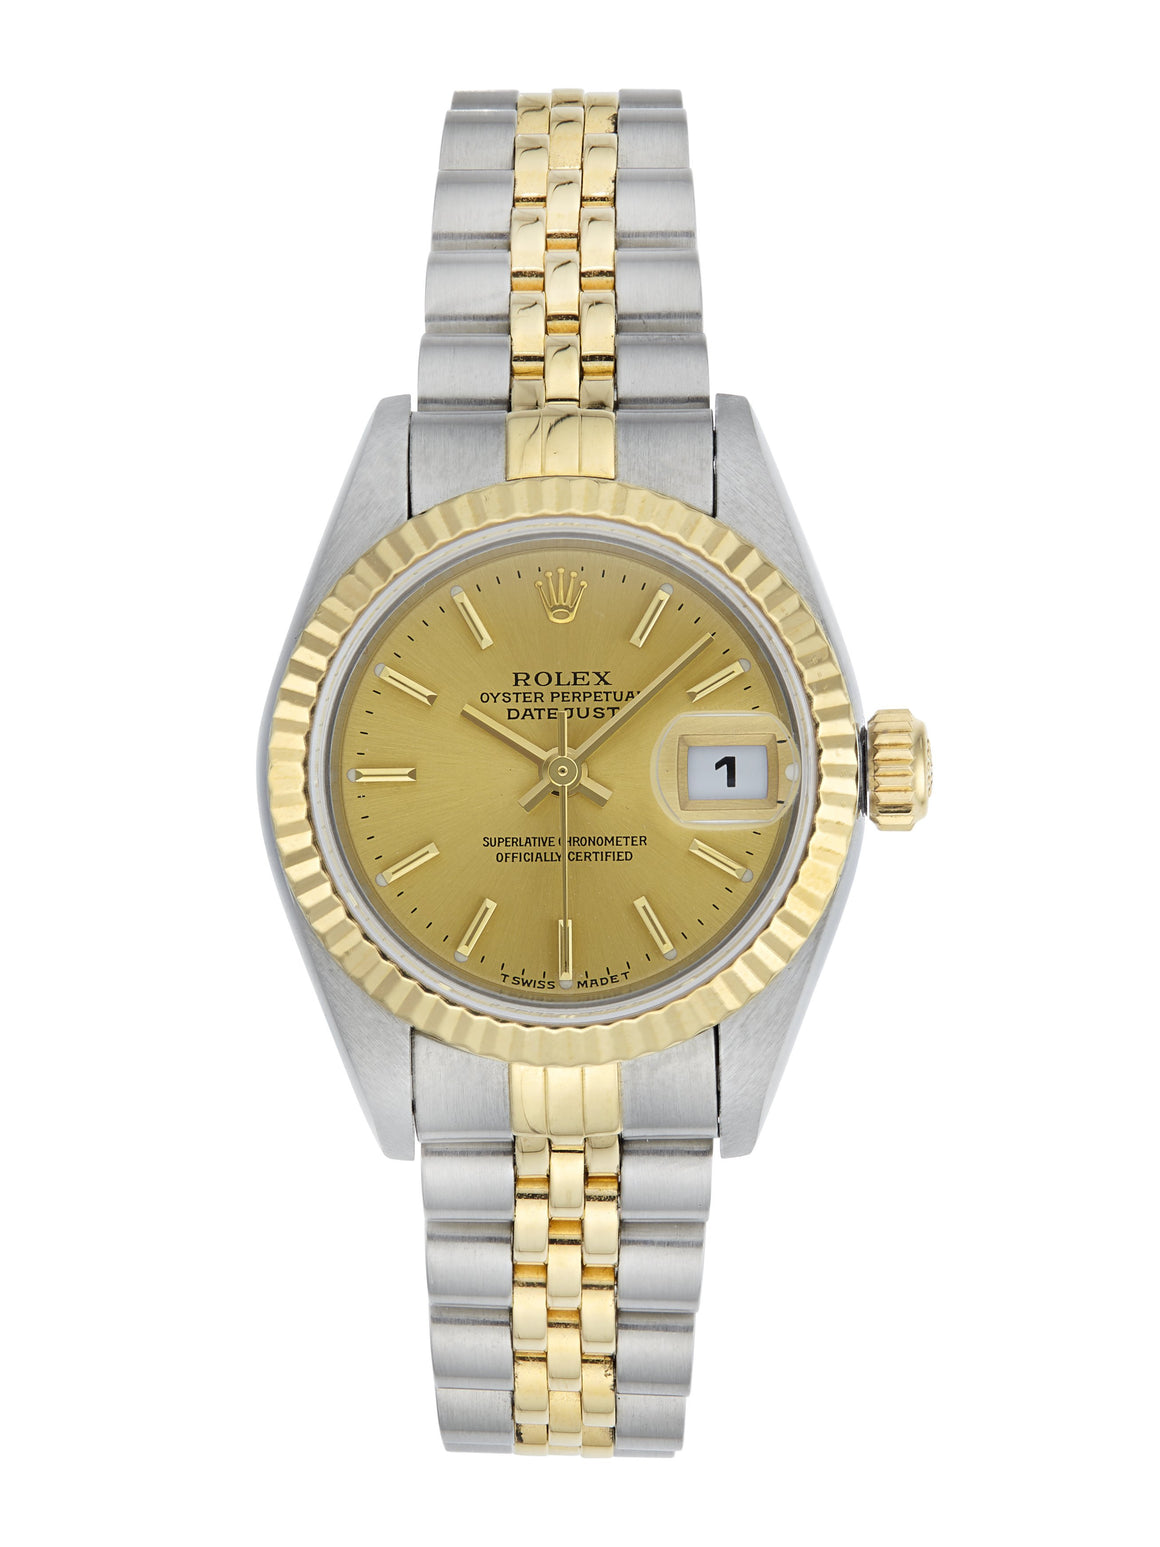 Rolex Datejust Ladies Watch Steel & Gold, Champagne Dial 79173 (Papers)